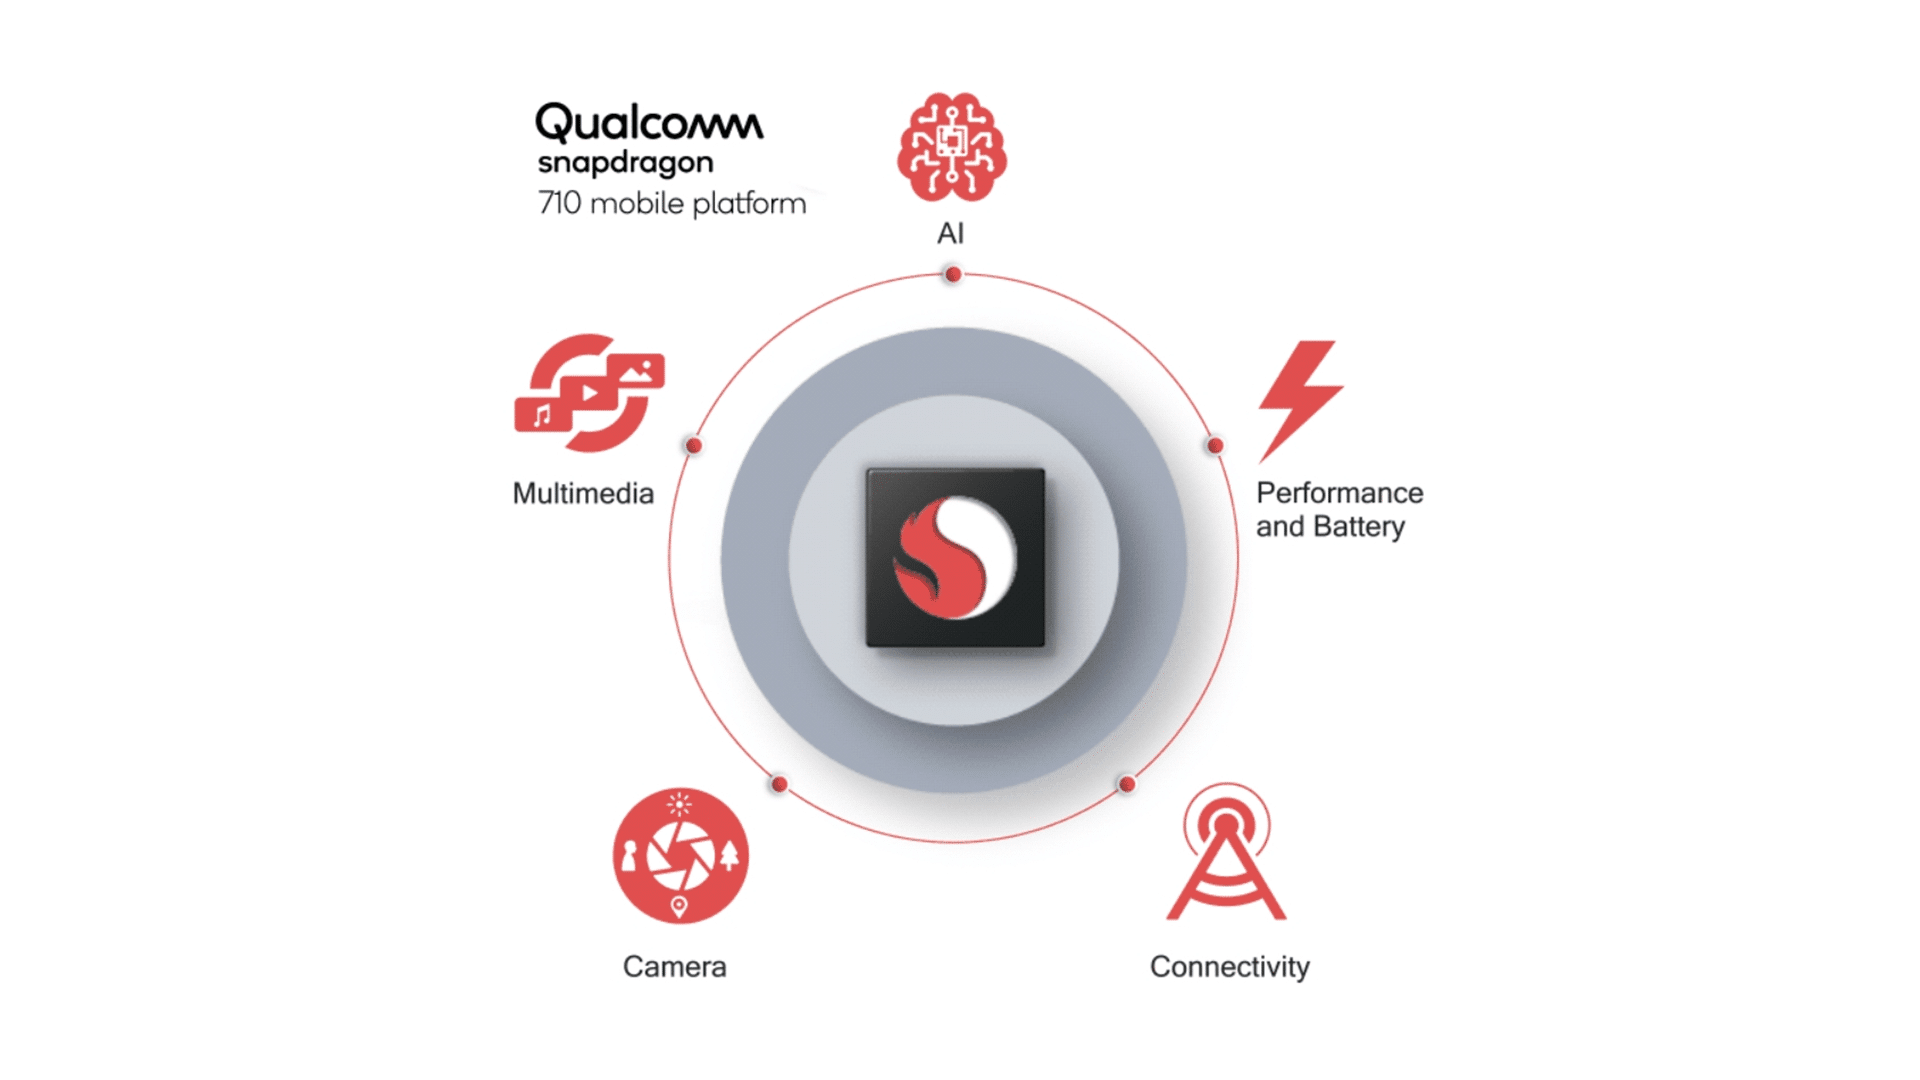 Snapdragon 710 Brings 10nm Process Technology To The Mid-range Segment